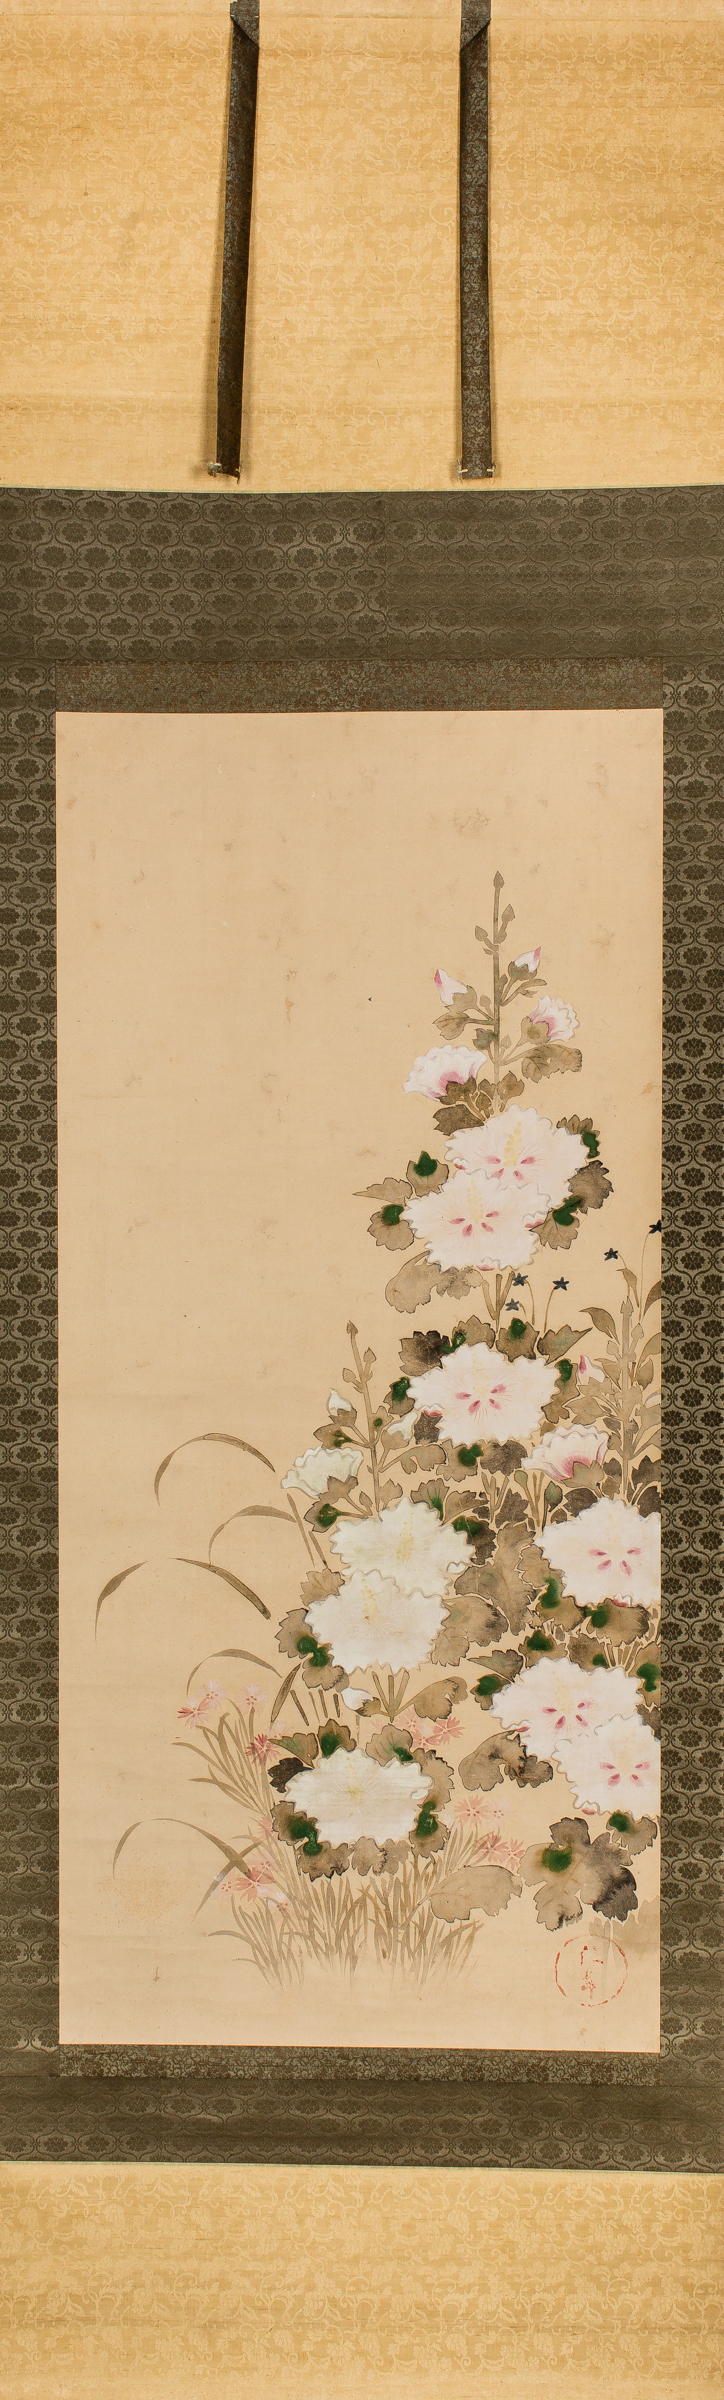 Antique Japanese Scroll of Hollyhocks